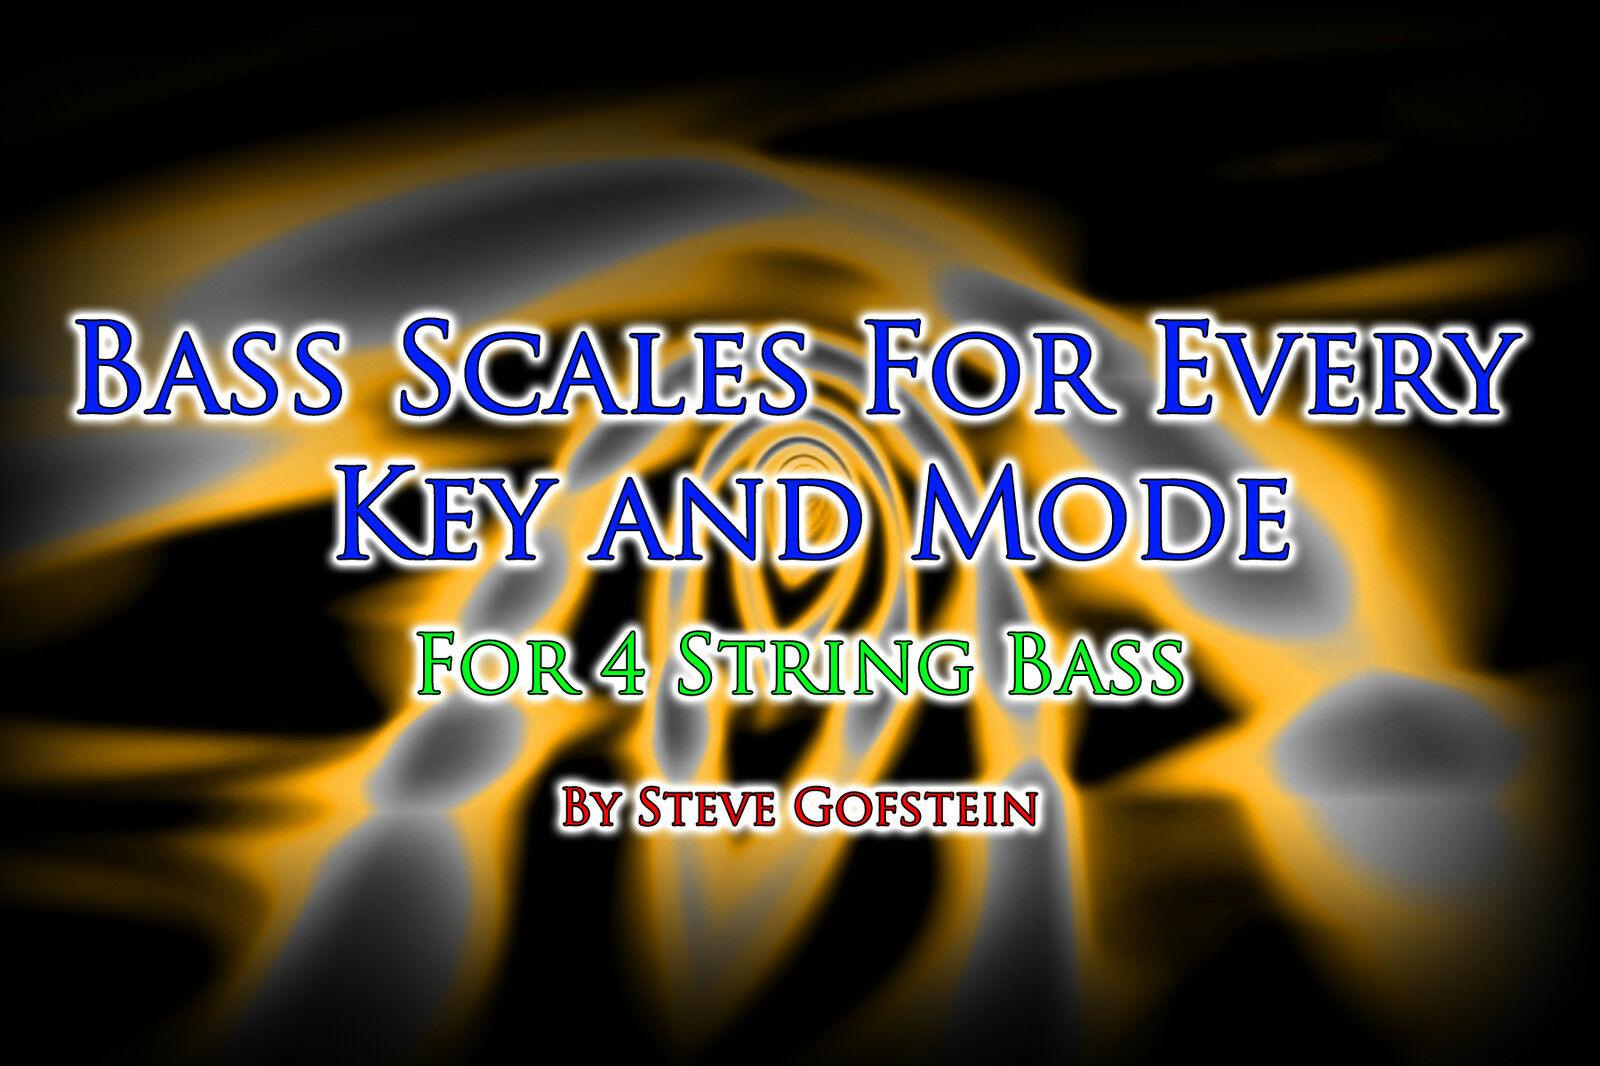 2 Book Bundle 4 String Bass Guitar Scales And Mode Charts And Chord